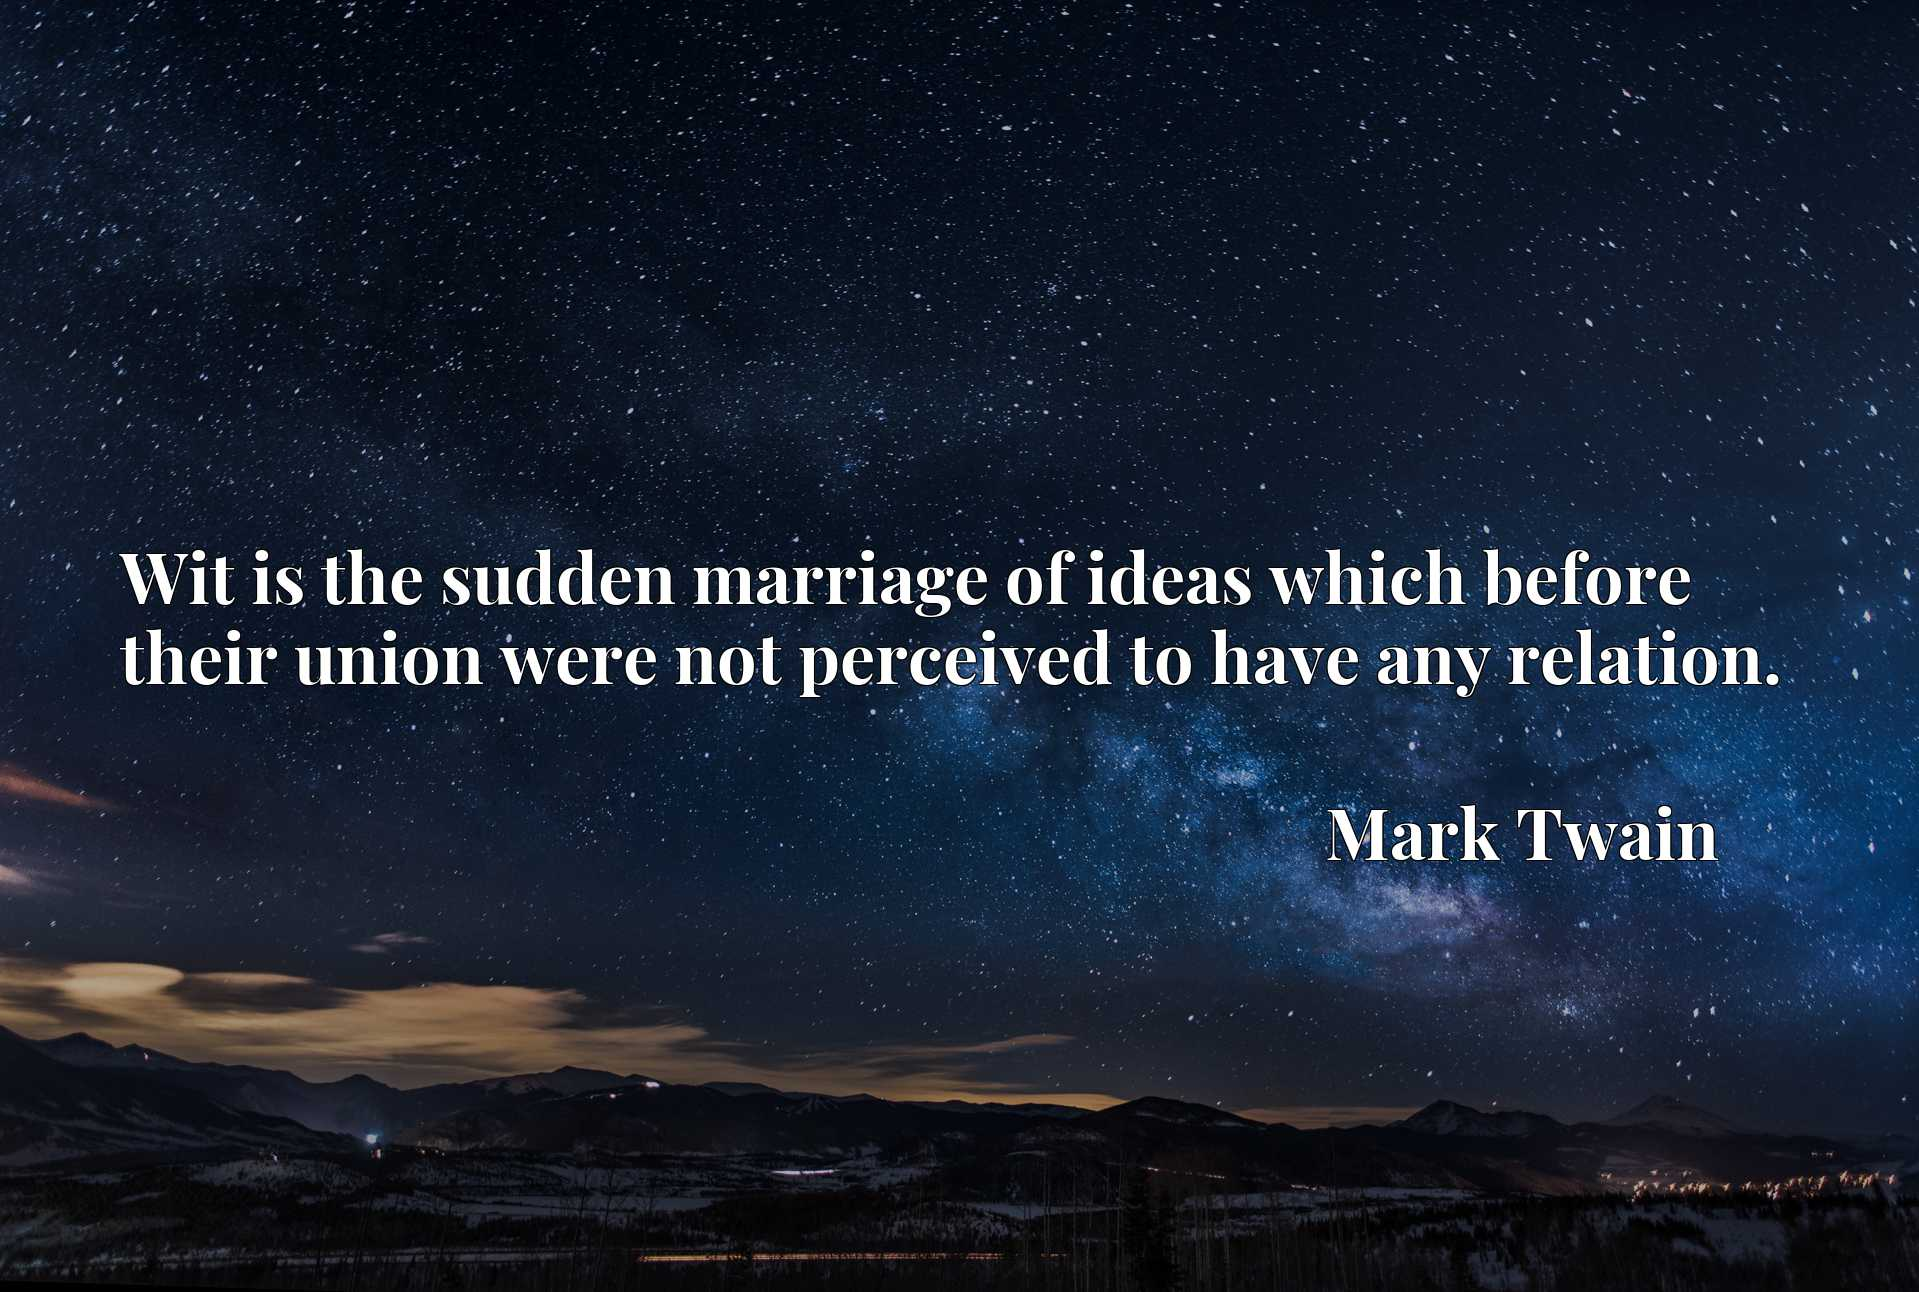 Quote Picture :Wit is the sudden marriage of ideas which before their union were not perceived to have any relation.